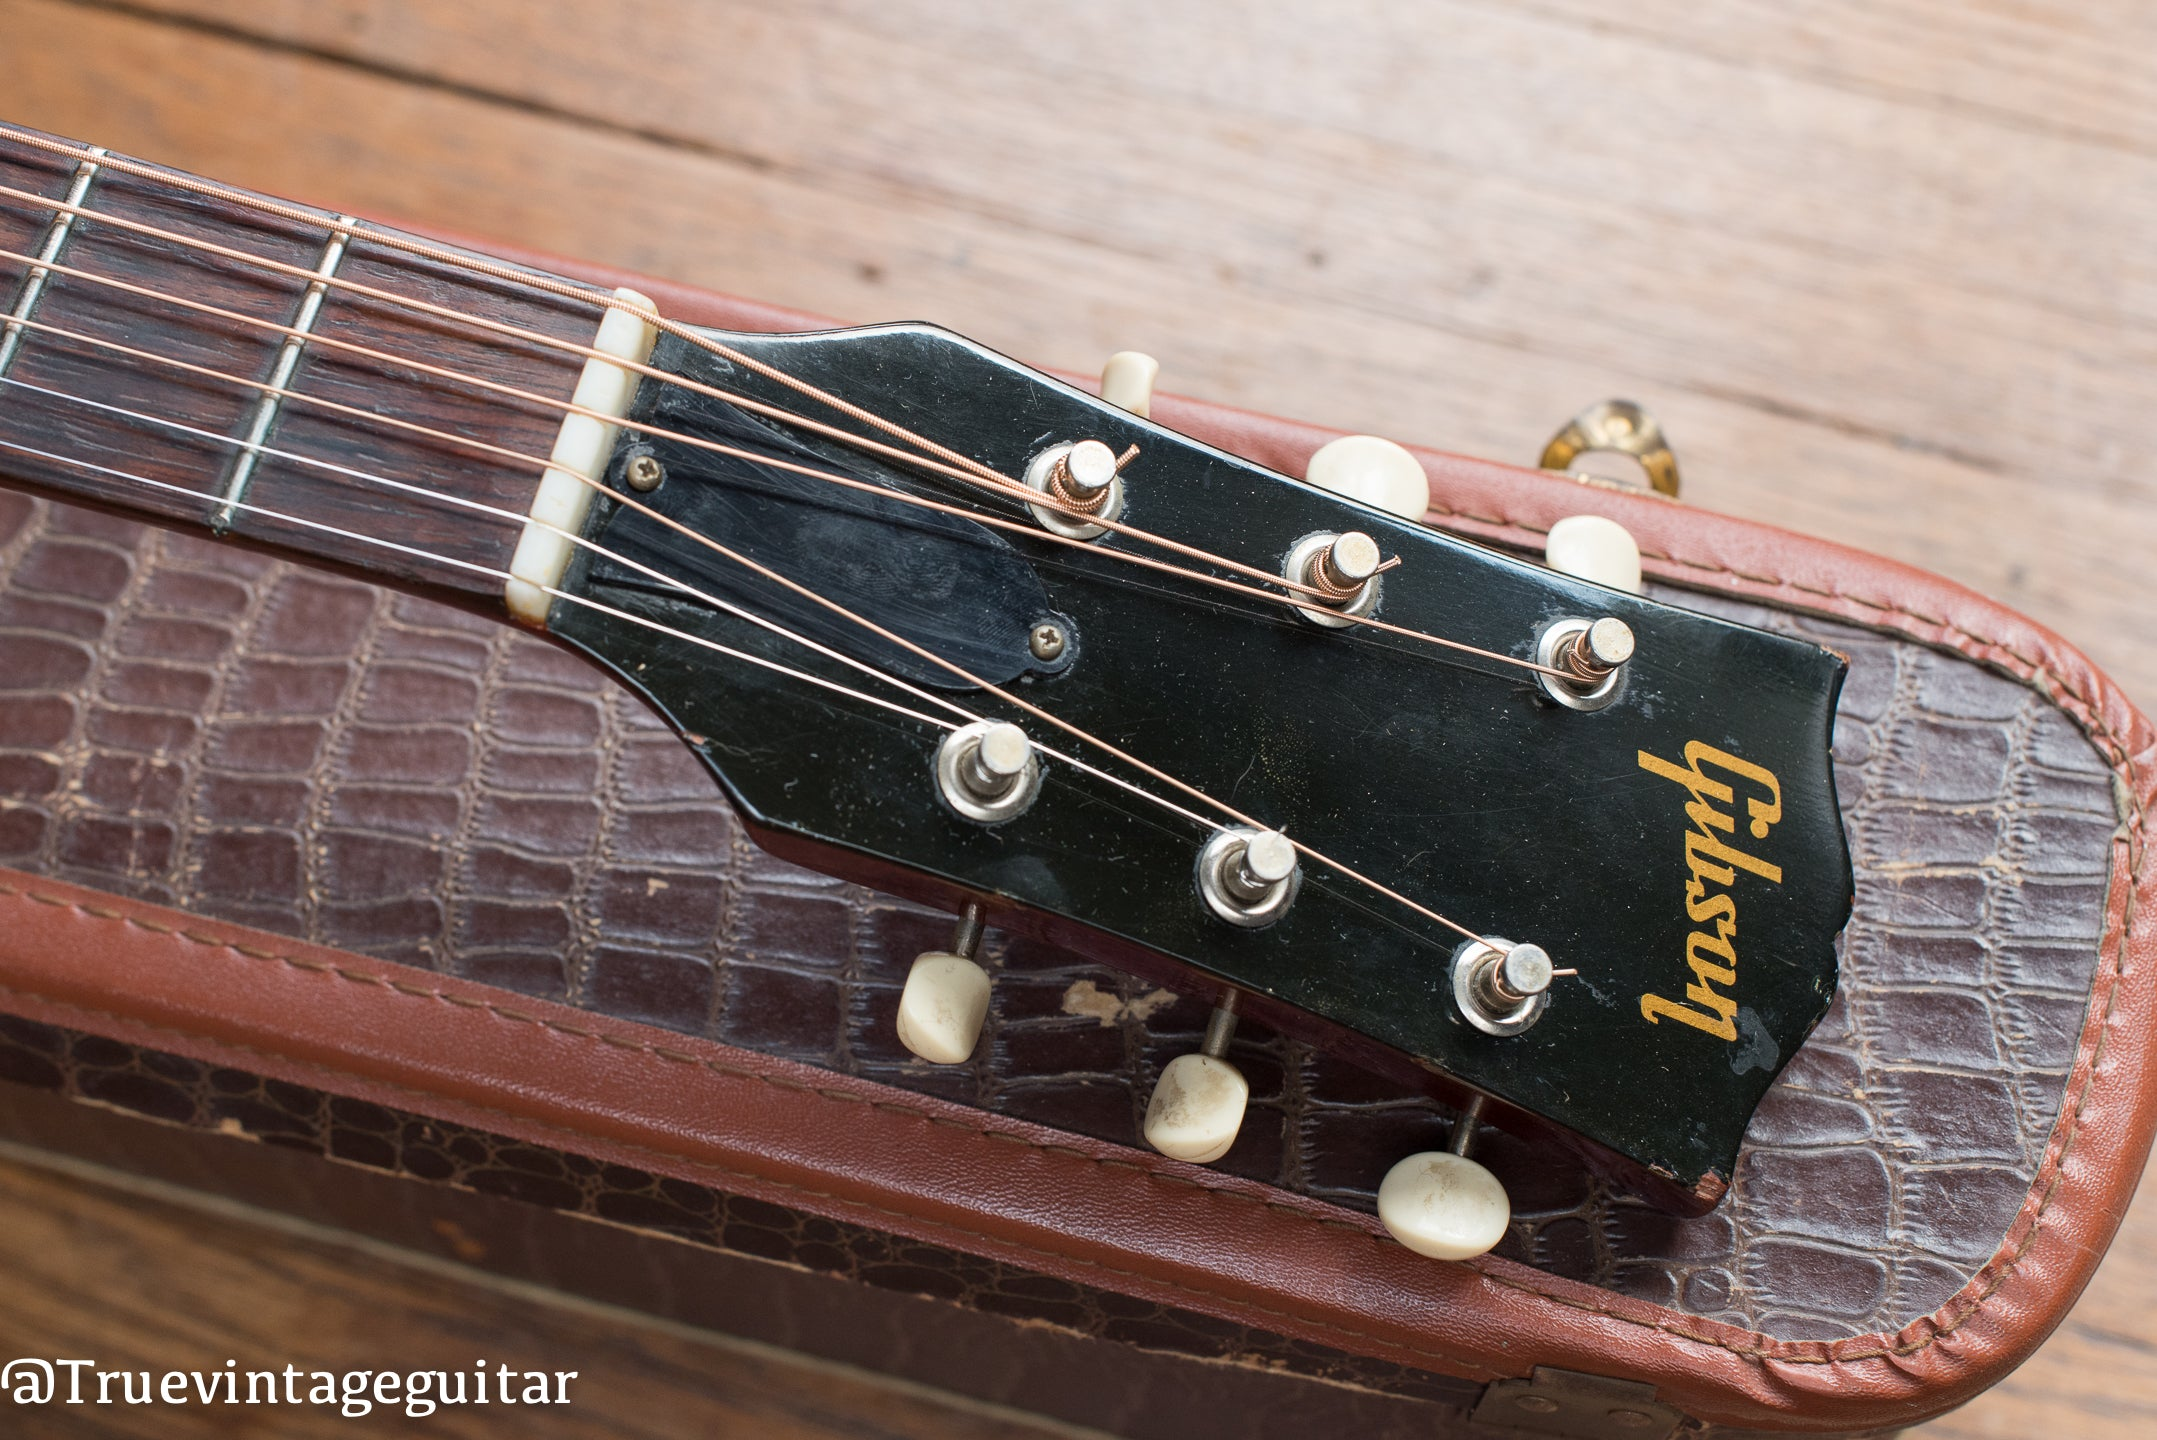 Where to sell vintage Gibson guitars